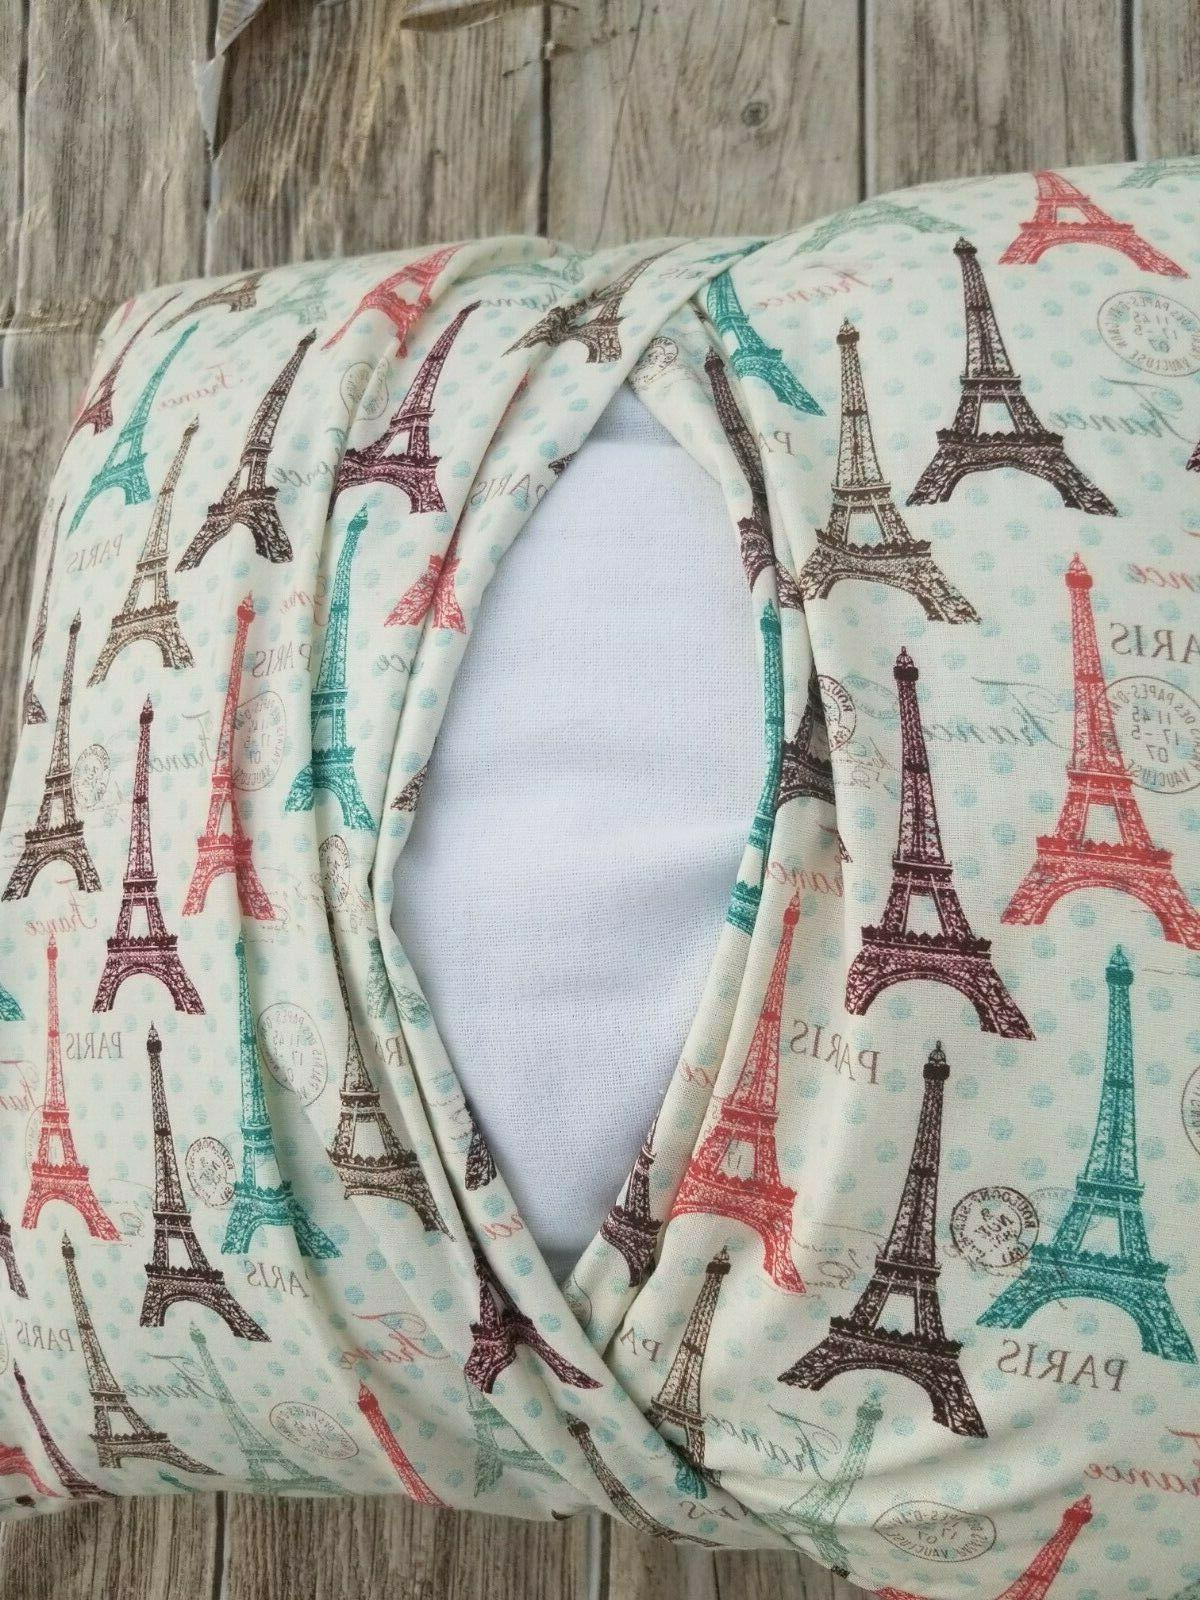 Adorable cover with Eiffel